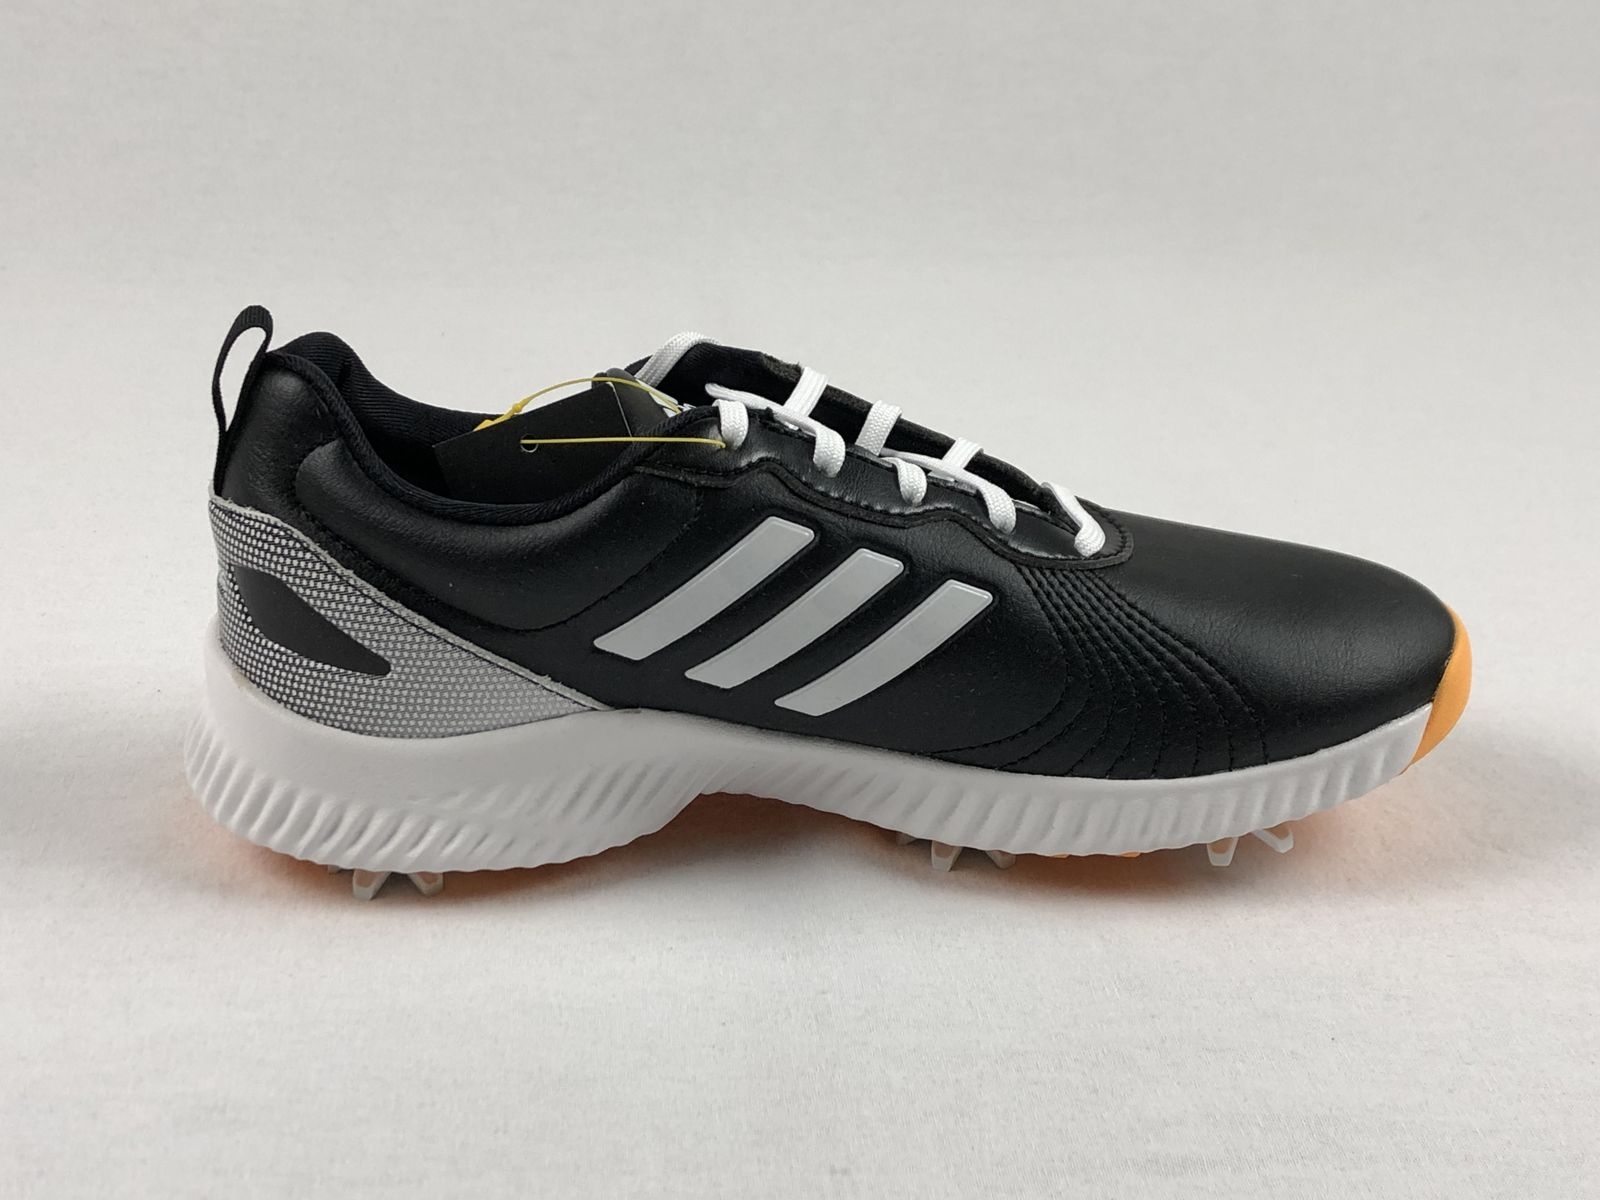 NWT, $80 MSRP, Womens adidas Mana Bounce W Athletic Running